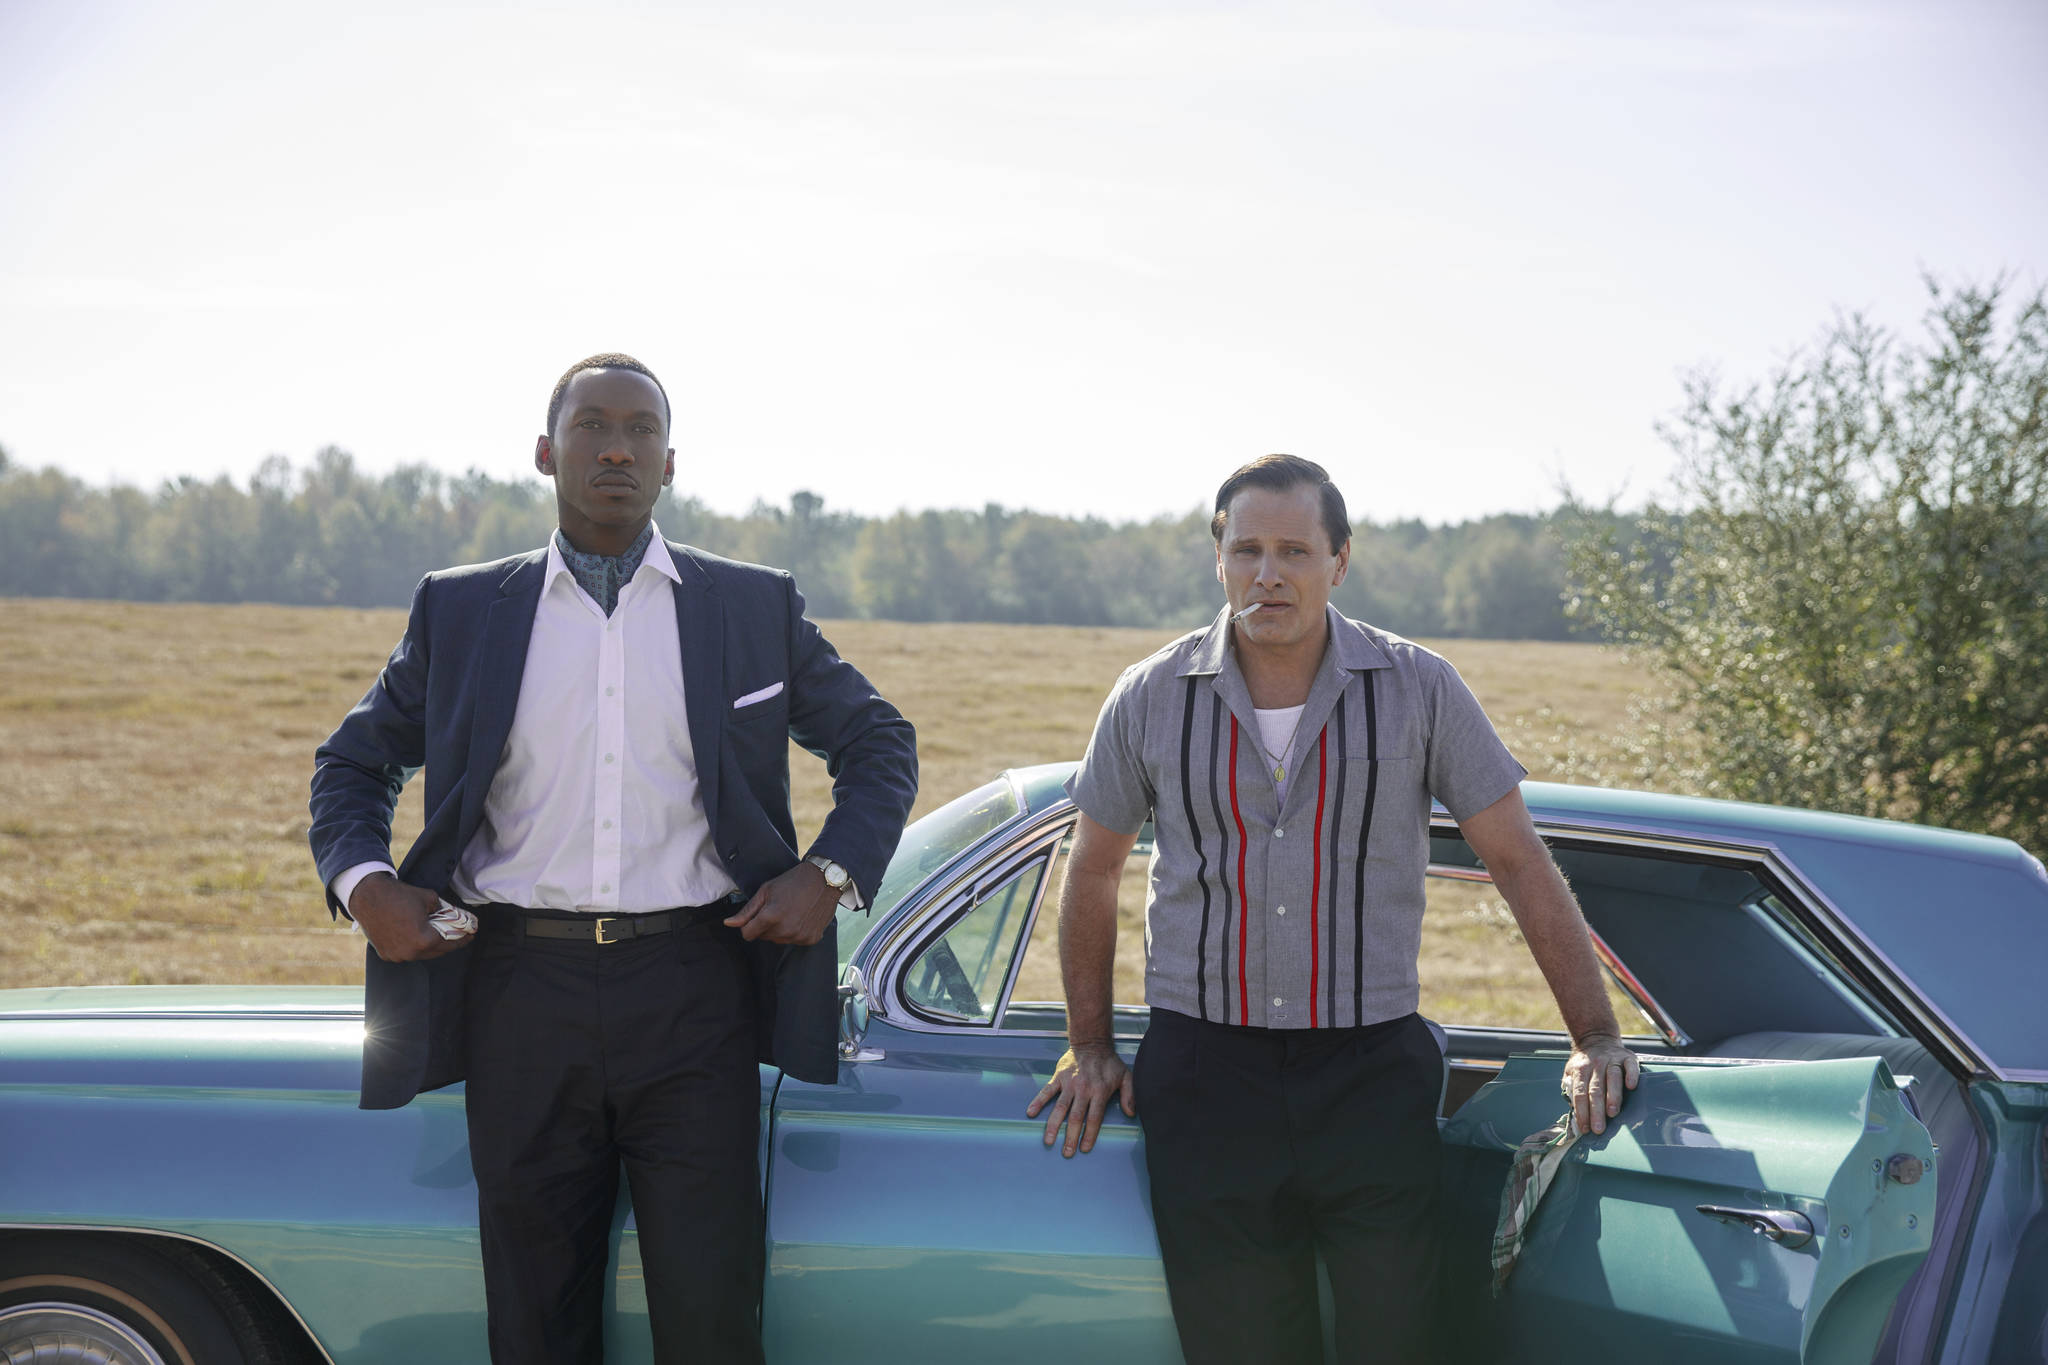 Viggo Mortensen and Mahershala Ali in Green Book. Photo: DreamWorks Pictures / Universal